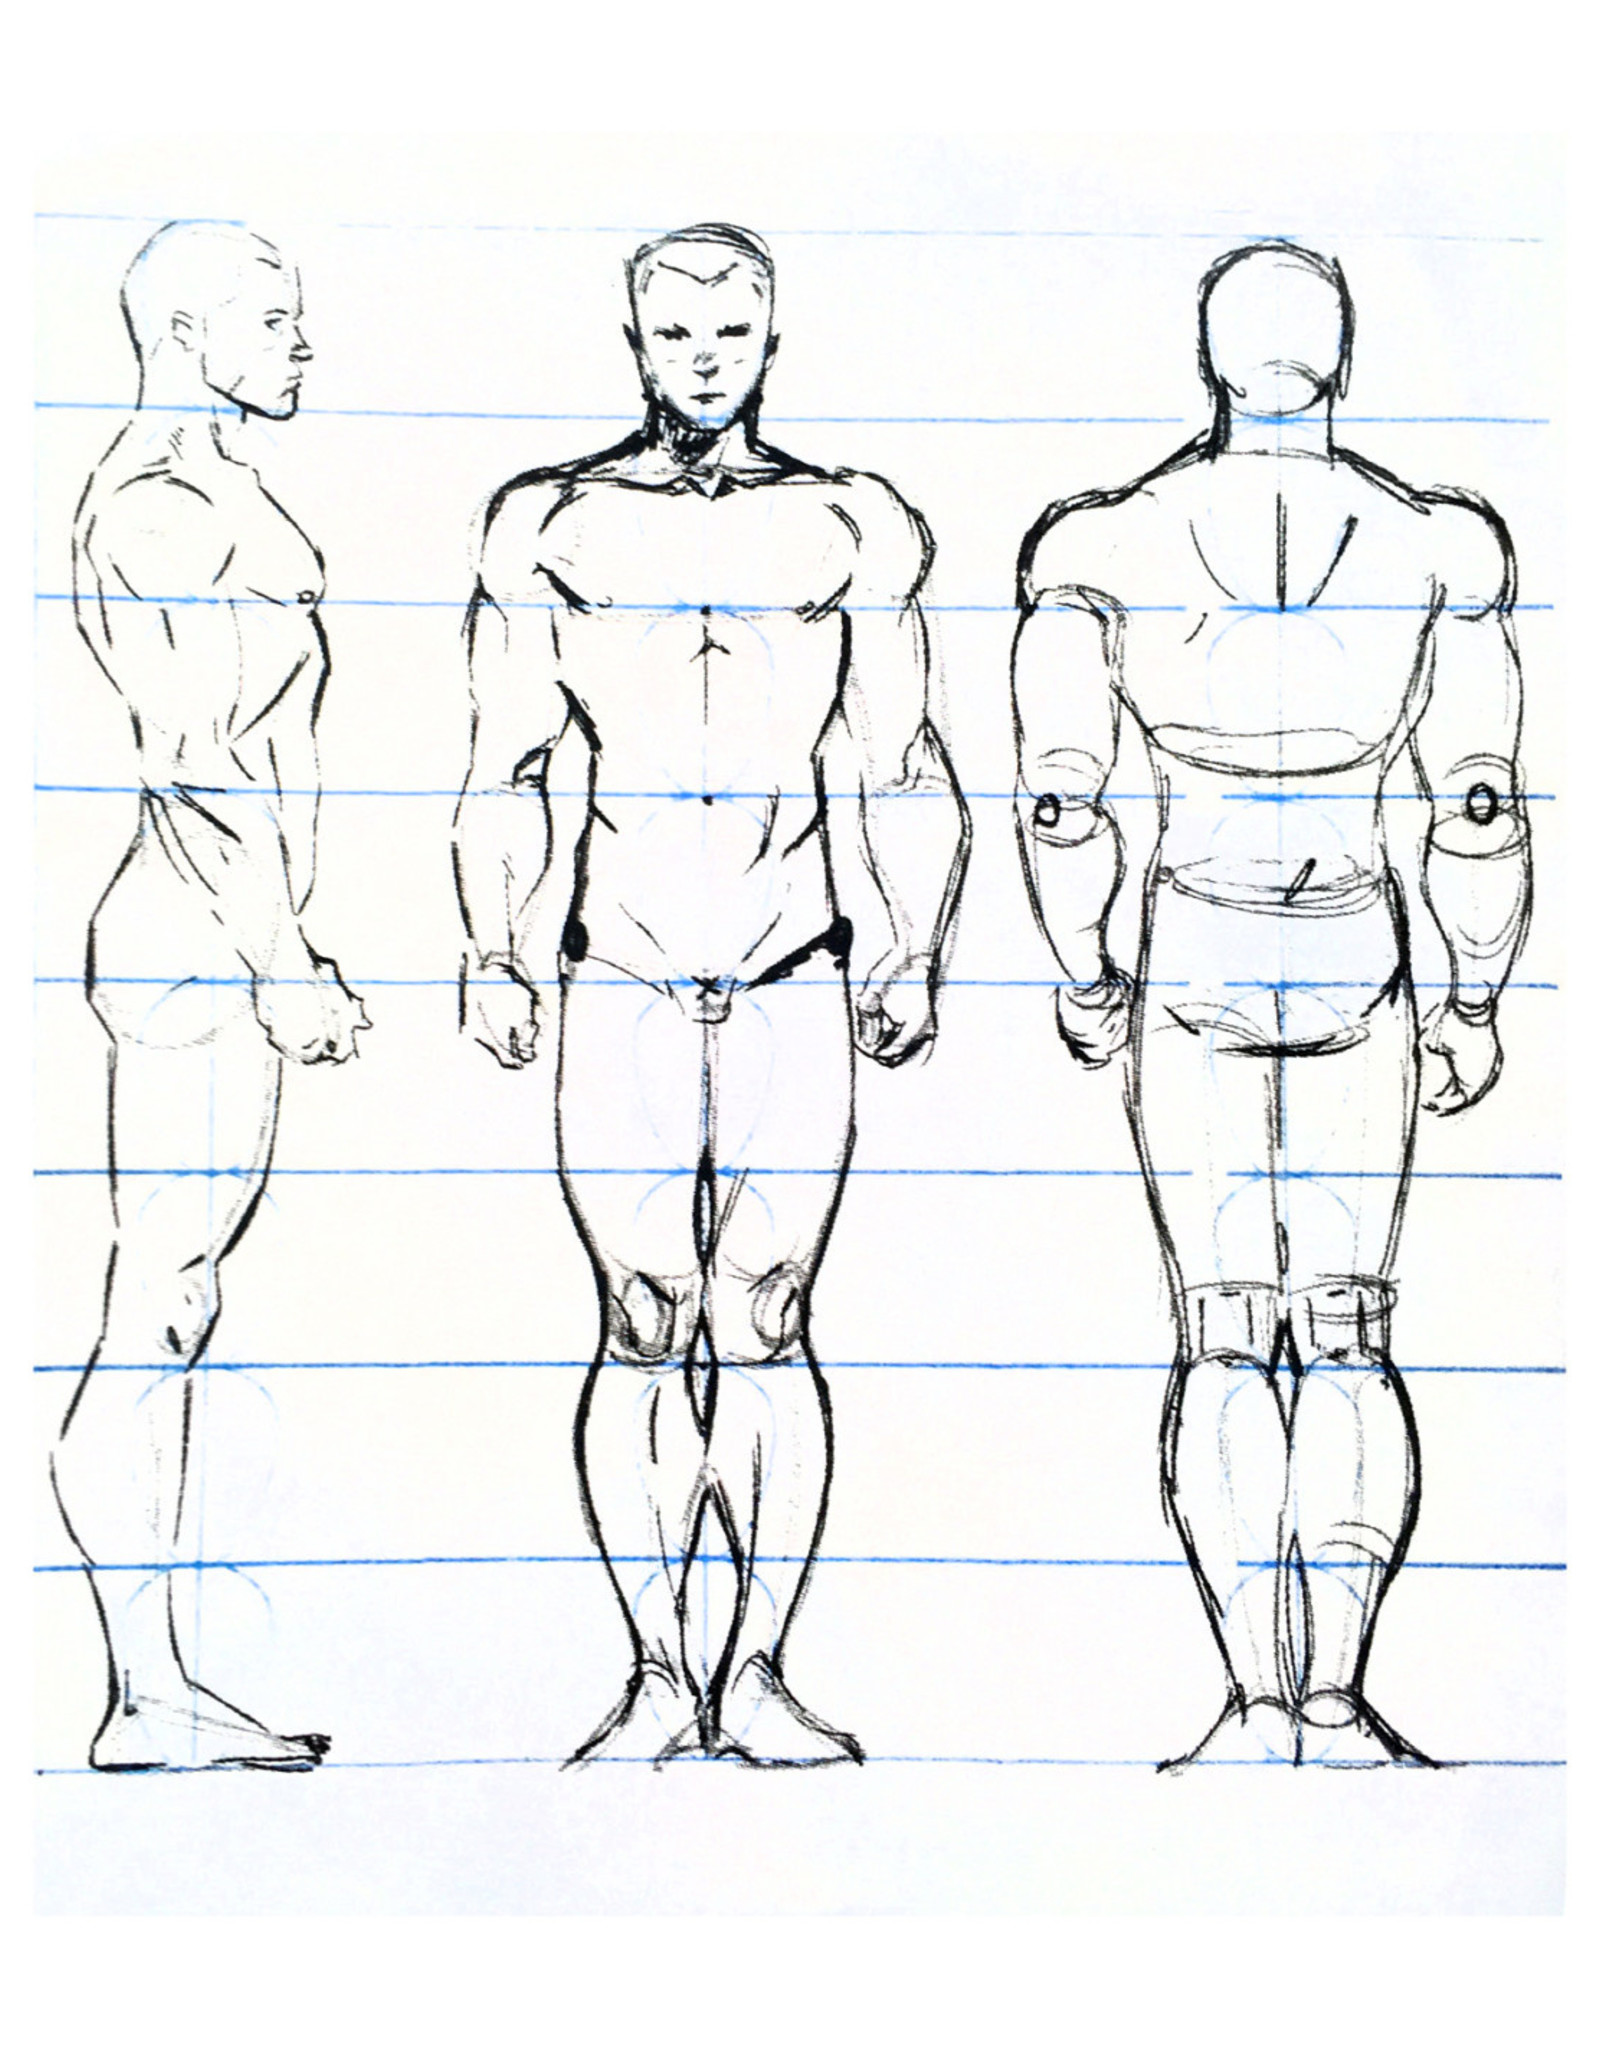 Nick W Youth Figure Drawing  Sat Feb 13, 20, 27 11:00 to 12:00 pm